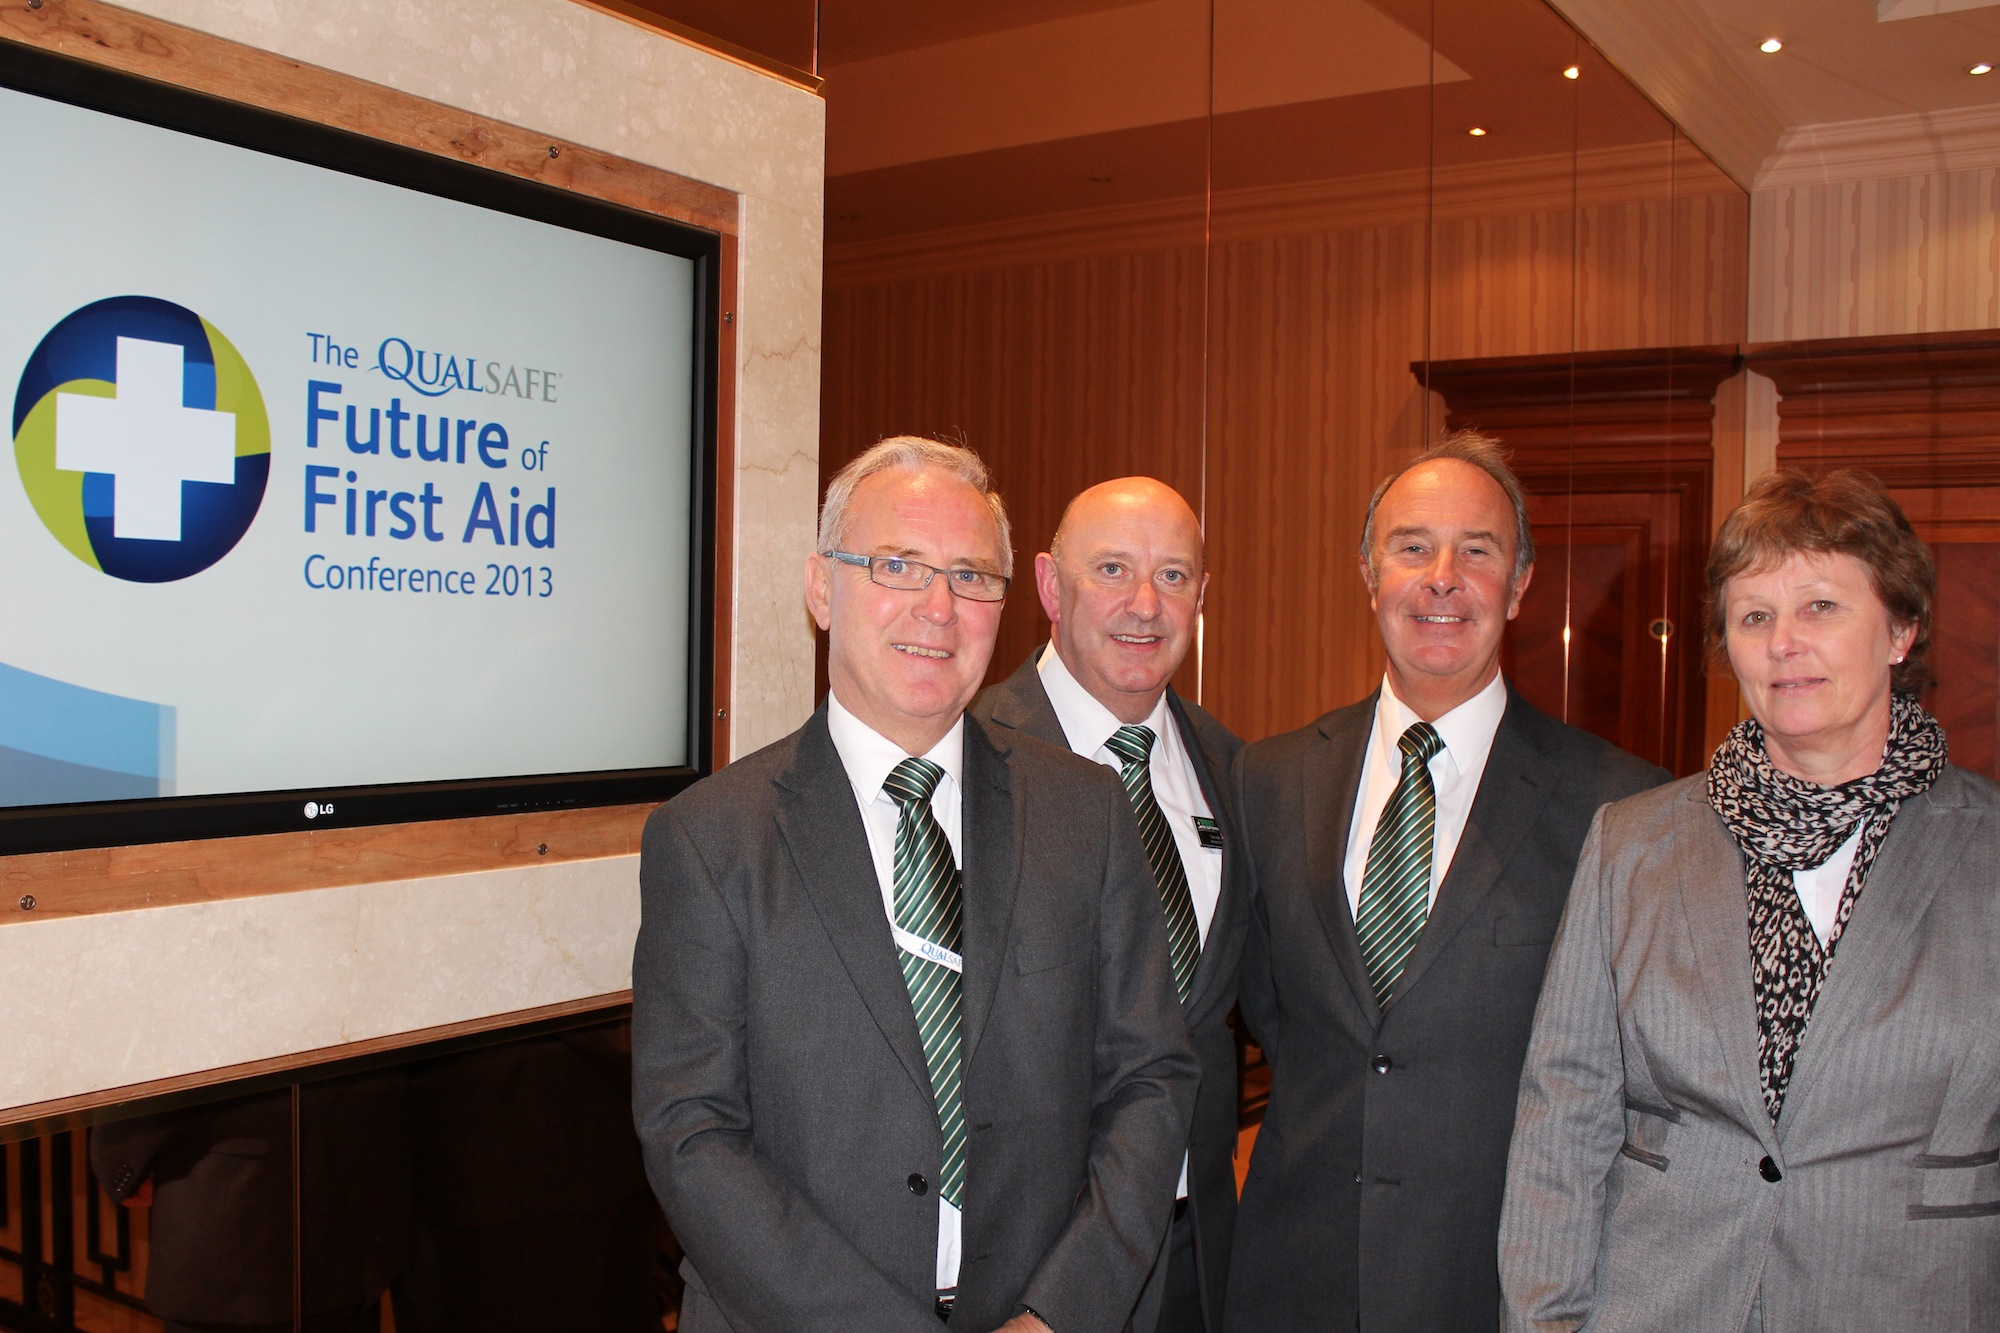 Qualsafe Future of First Aid Conference